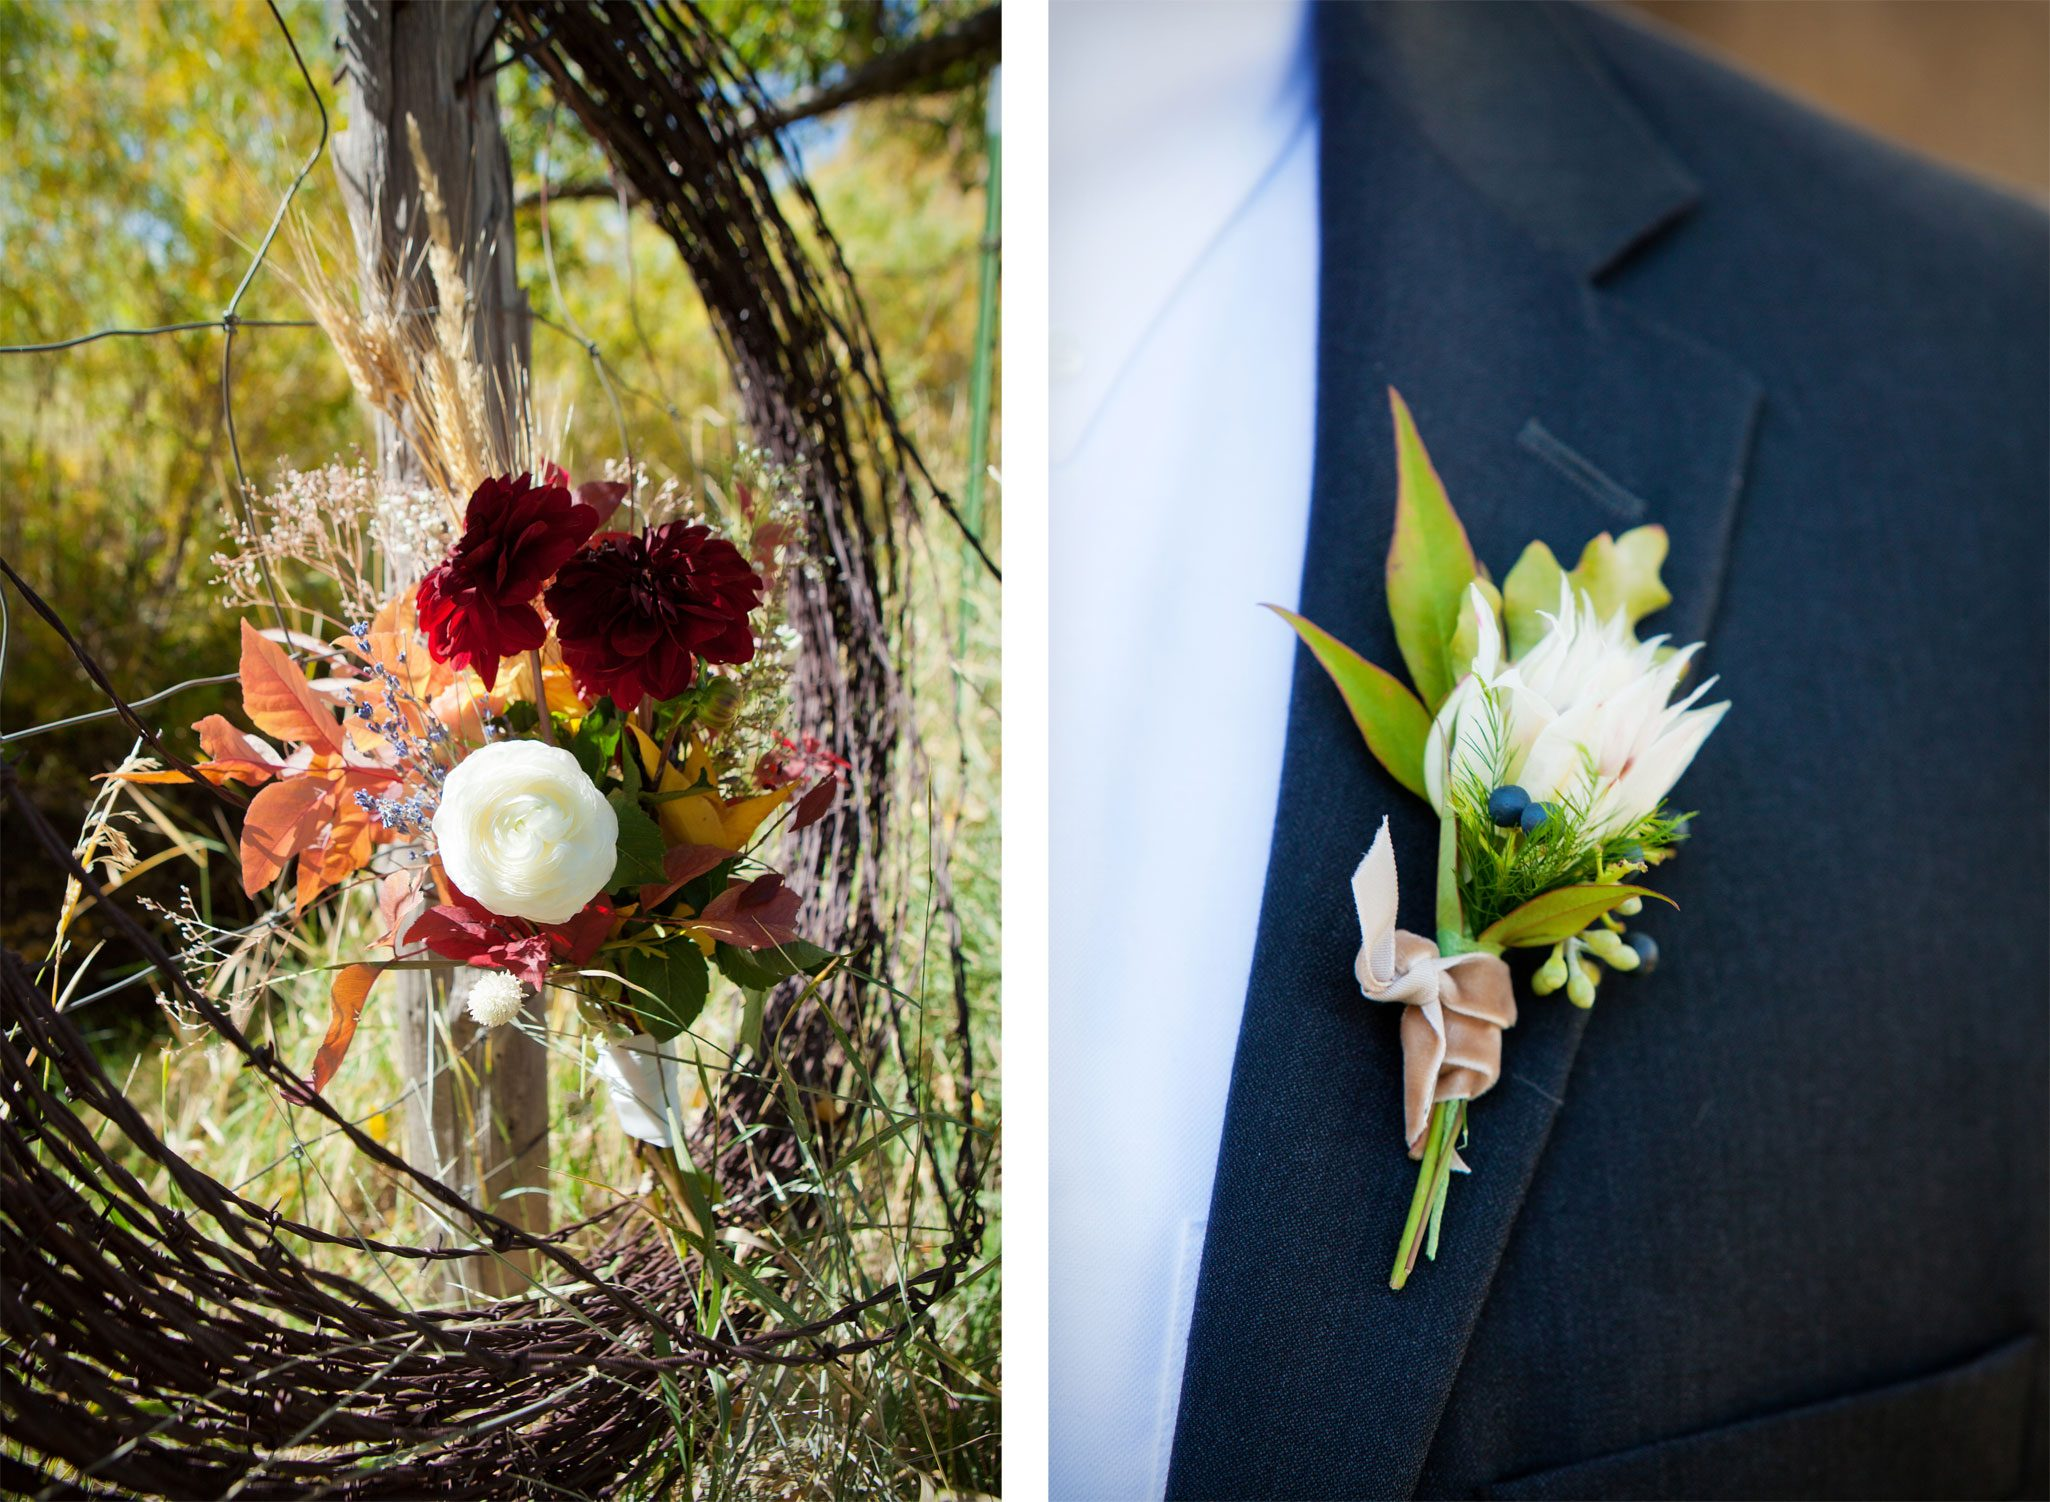 Flowers | An Outdoor Autumn Wedding in Mancos, Colorado